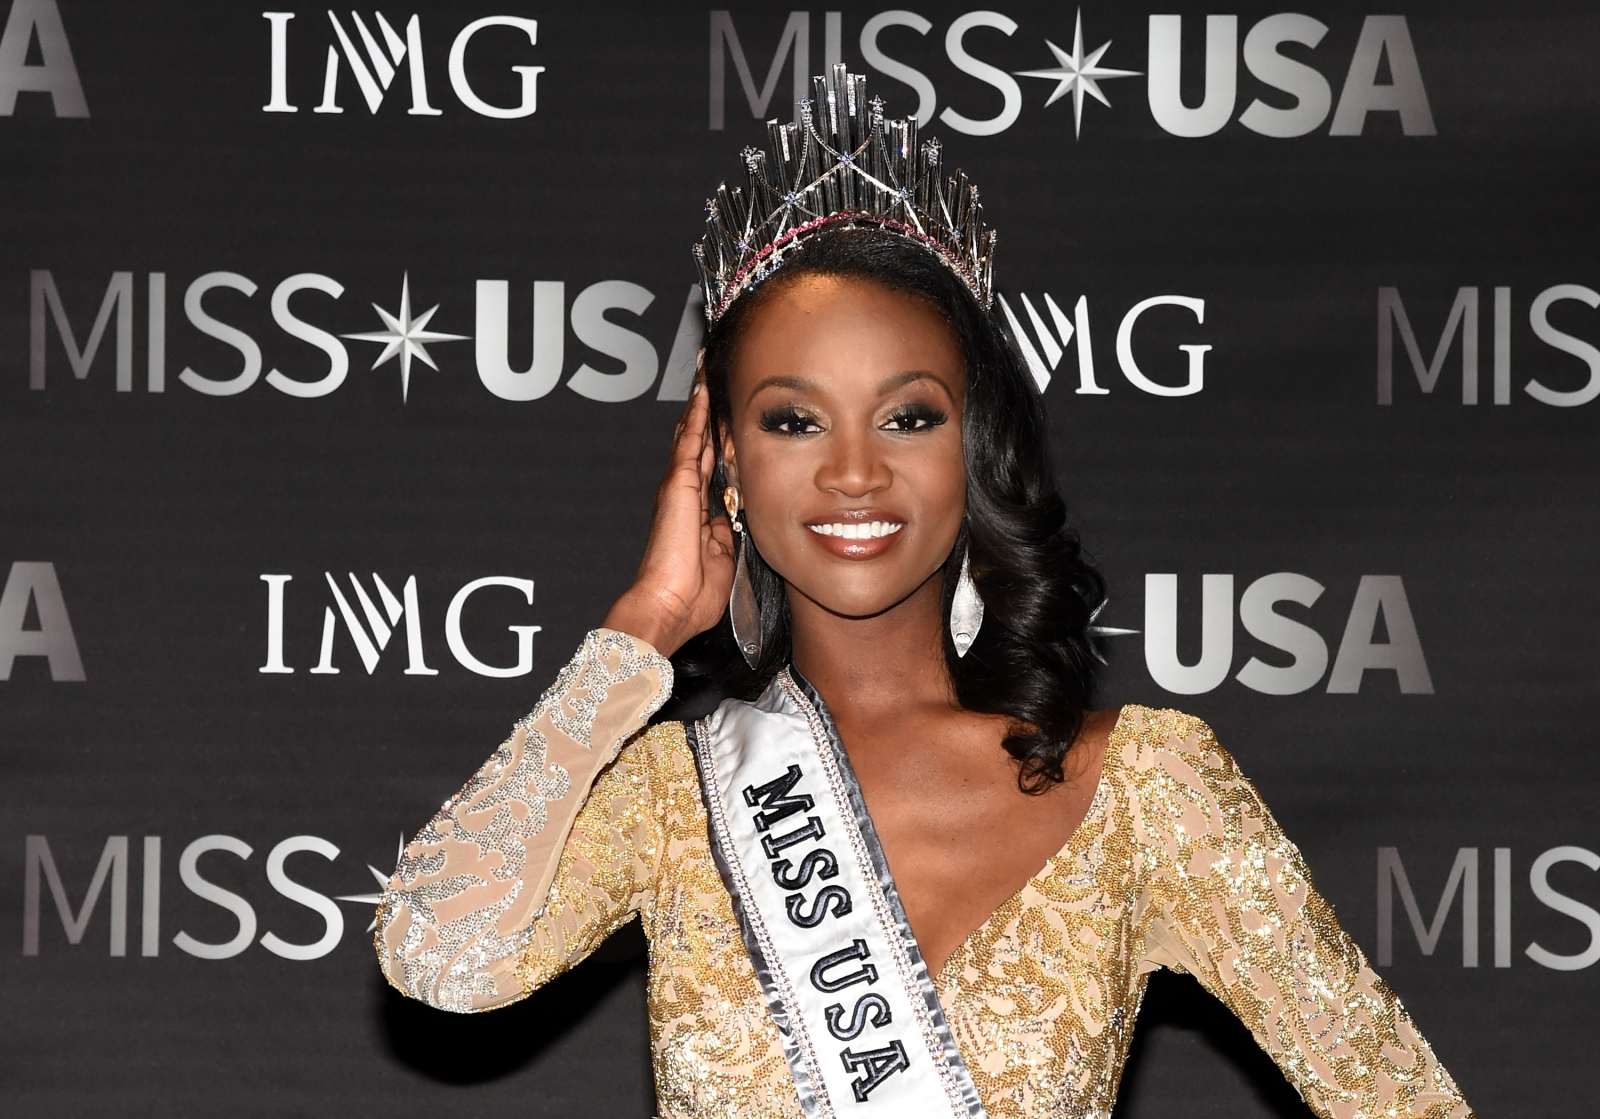 Miss District of Columbia Deshauna Barber